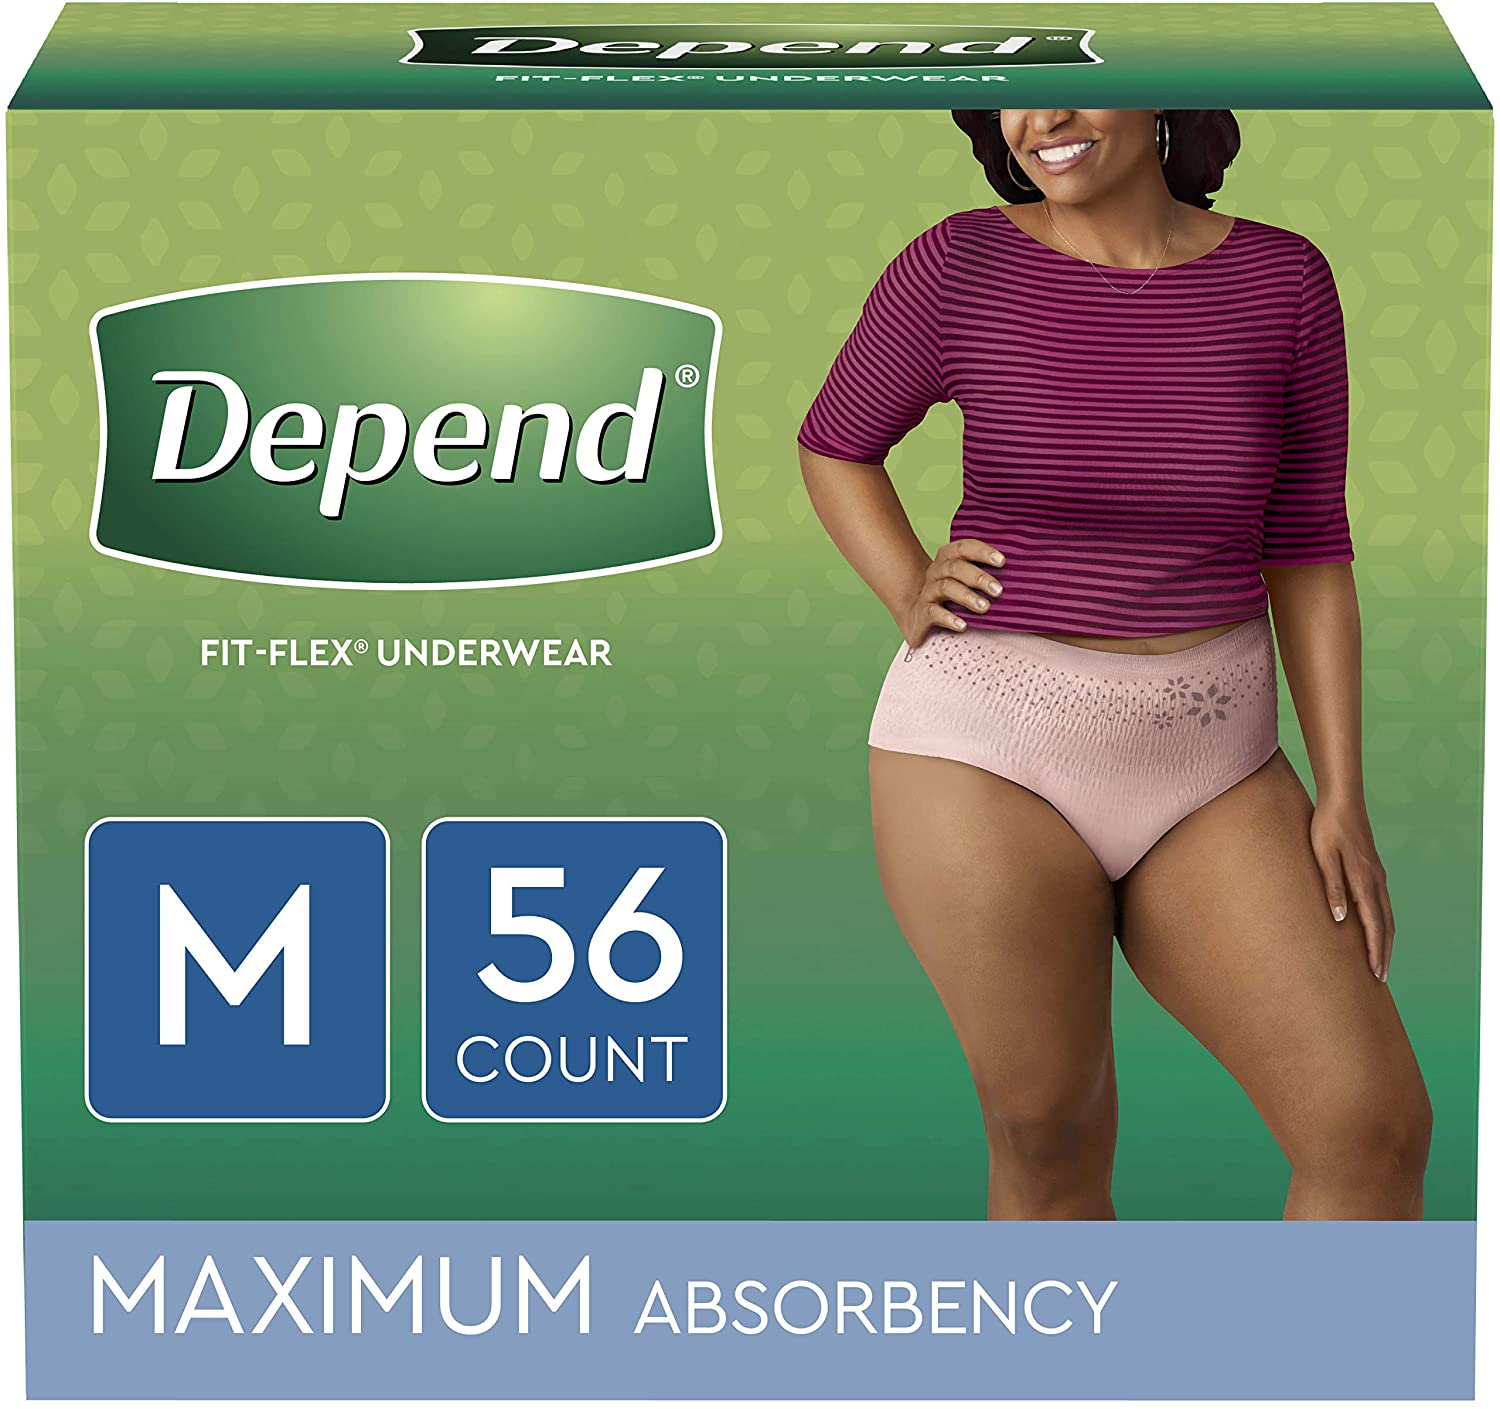 Depends Image